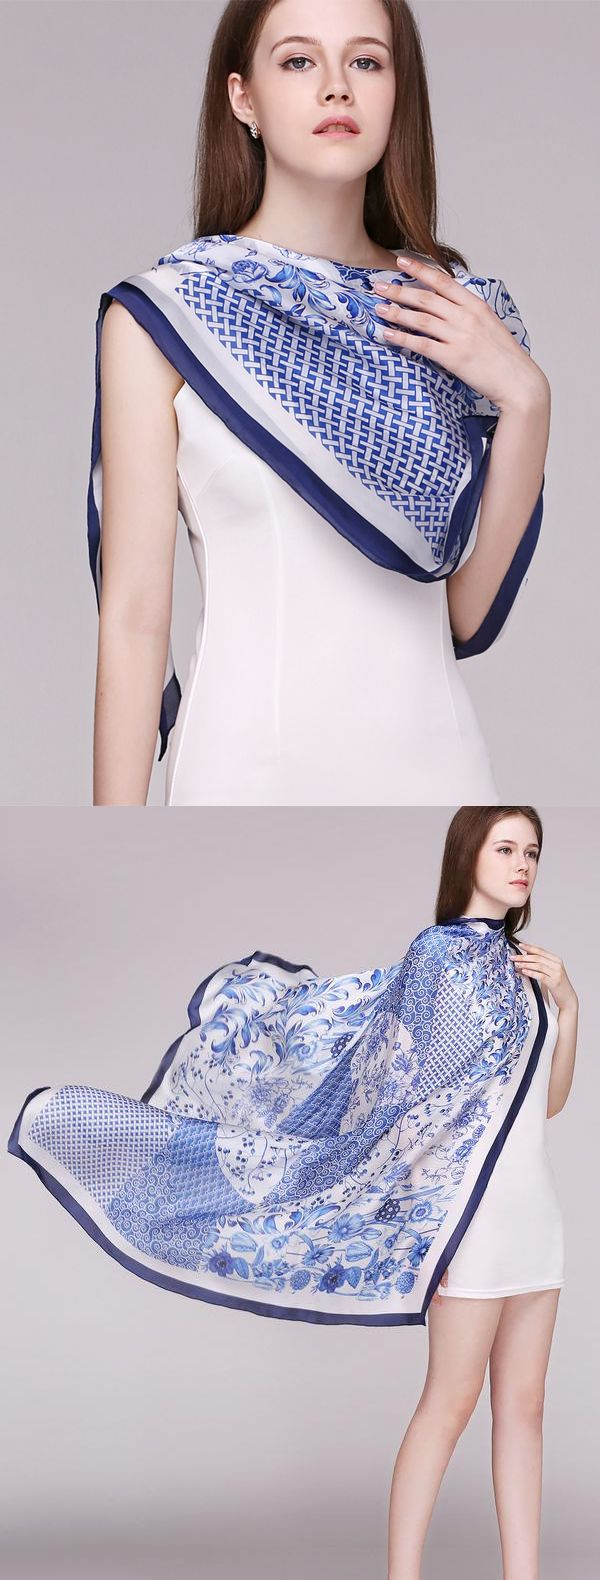 Blue and white impression 12mm silk Twill Exquisite printed hand curling scarf!More silk style at www.vividmoo.com